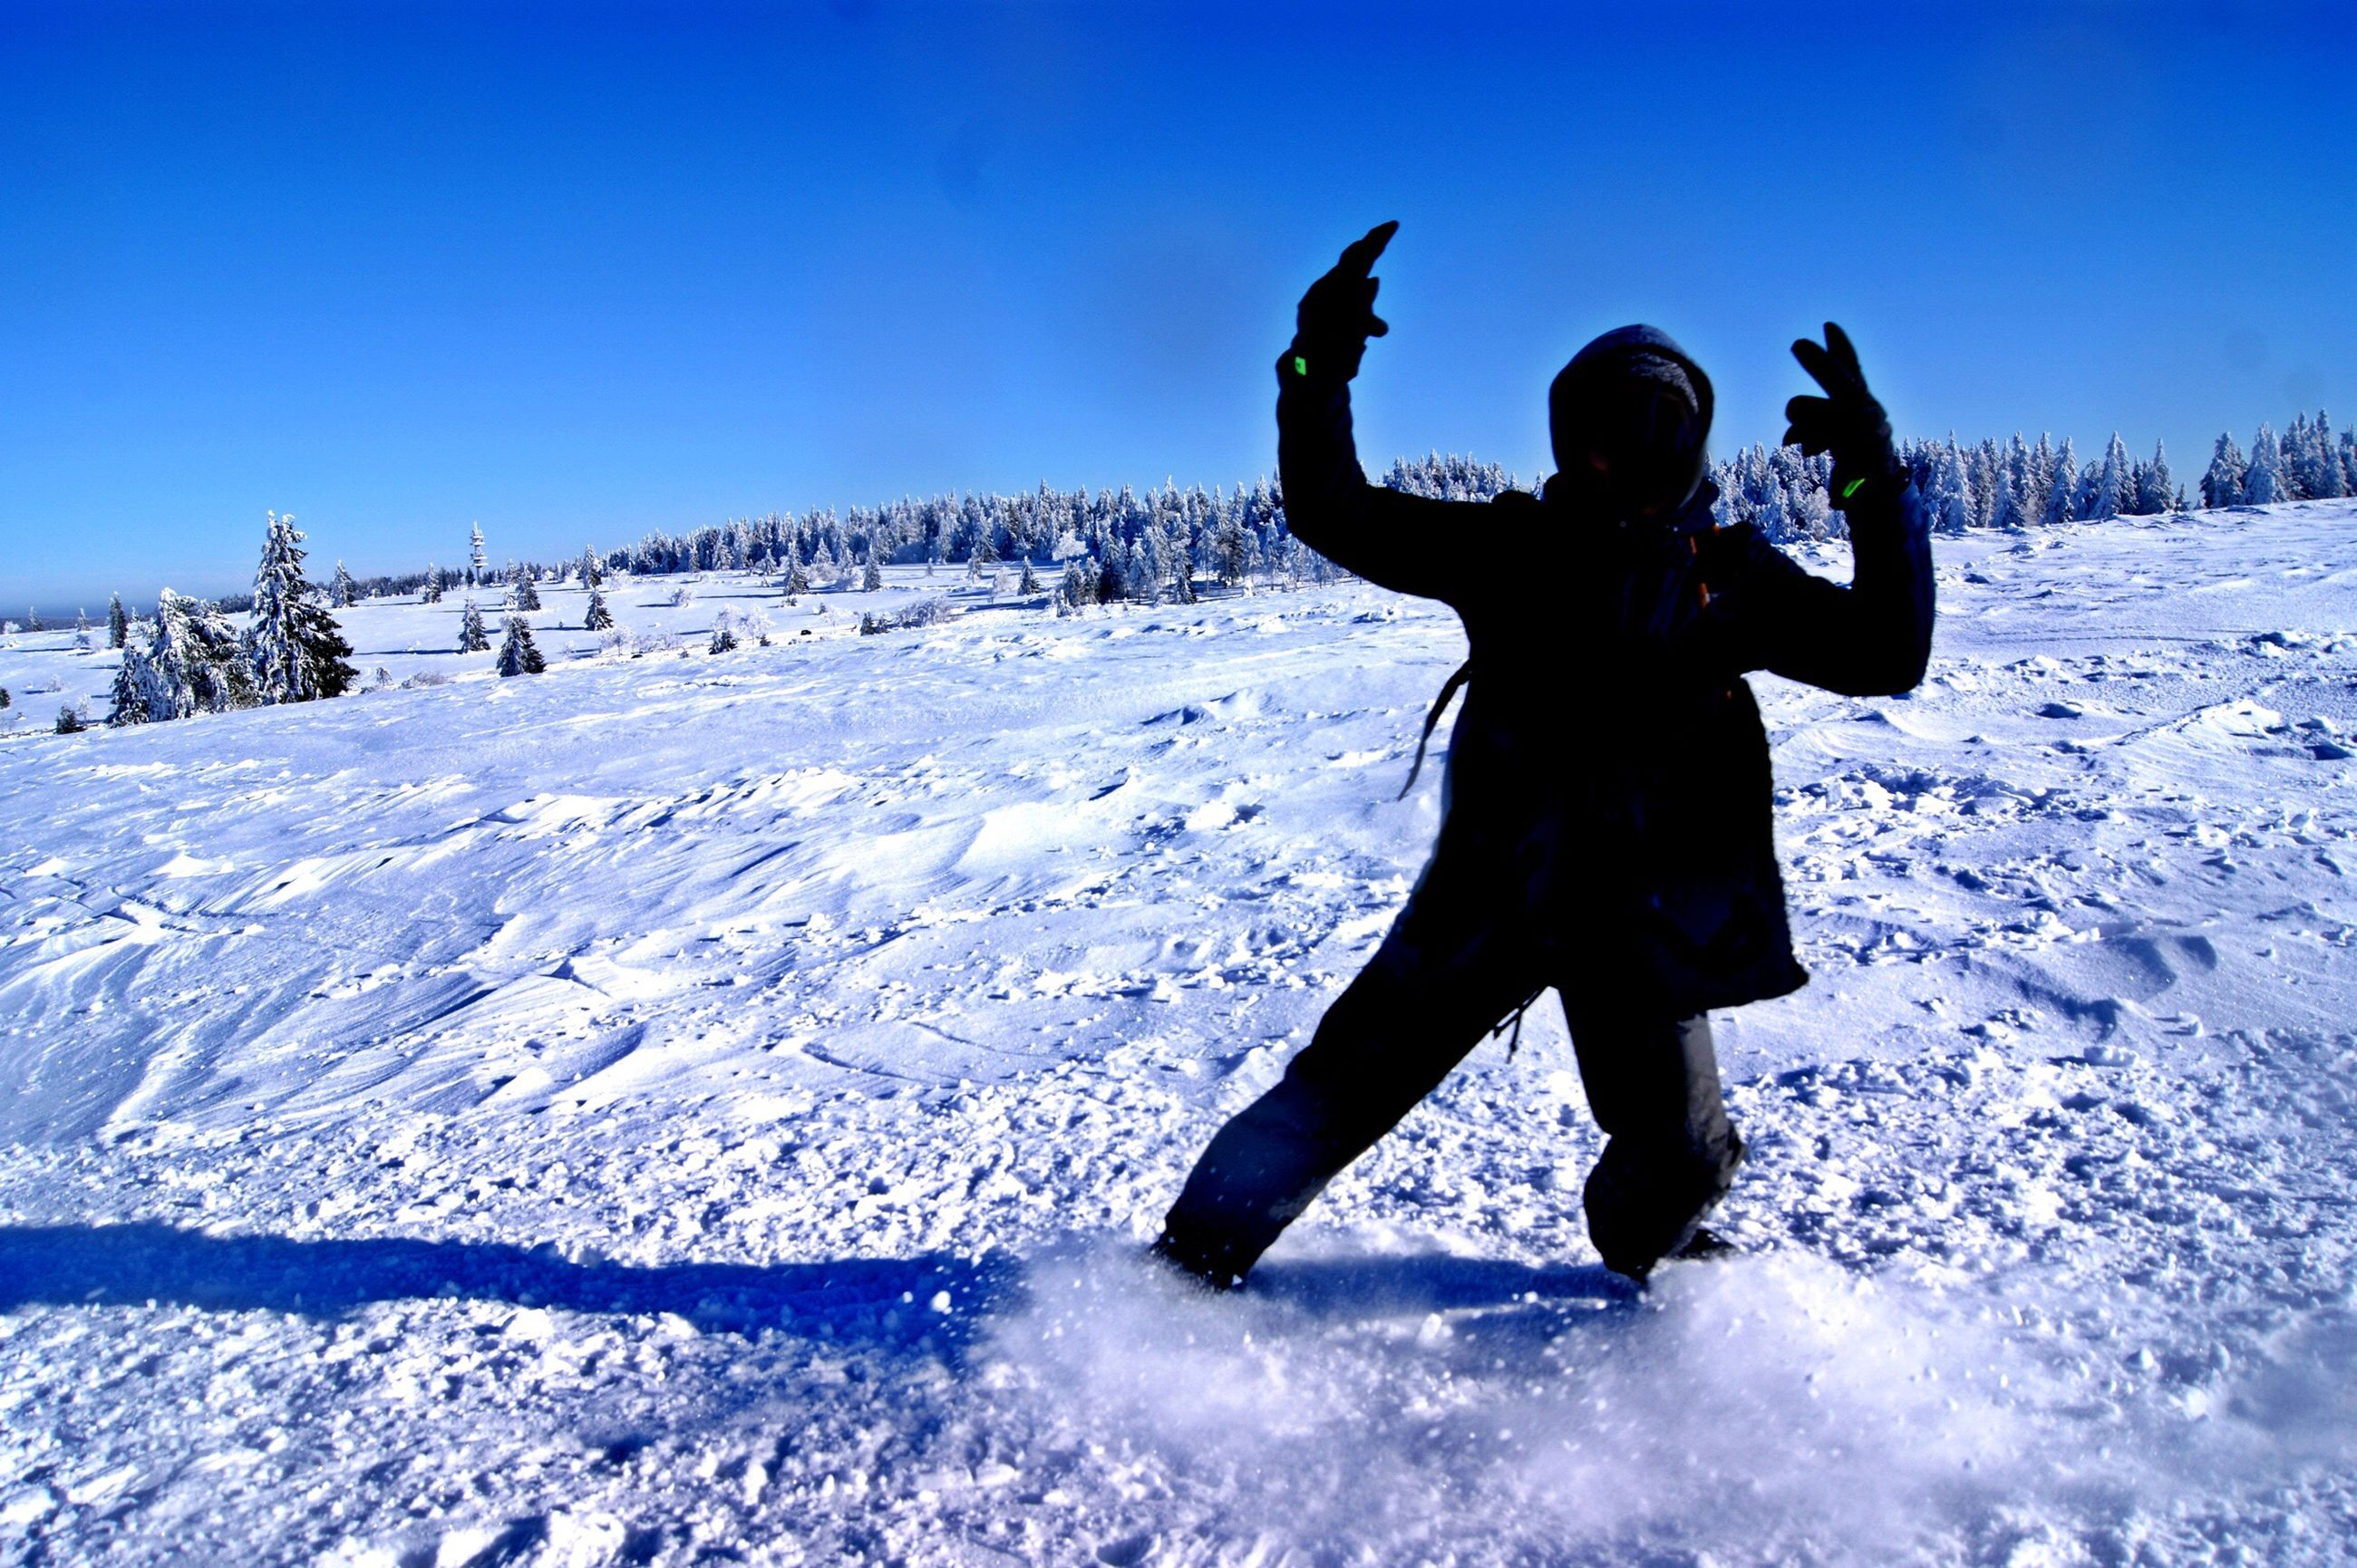 winter, snow, cold temperature, one person, arms raised, snowboarding, clear sky, outdoors, beauty in nature, day, happiness, human body part, sky, adventure, nature, people, adults only, adult